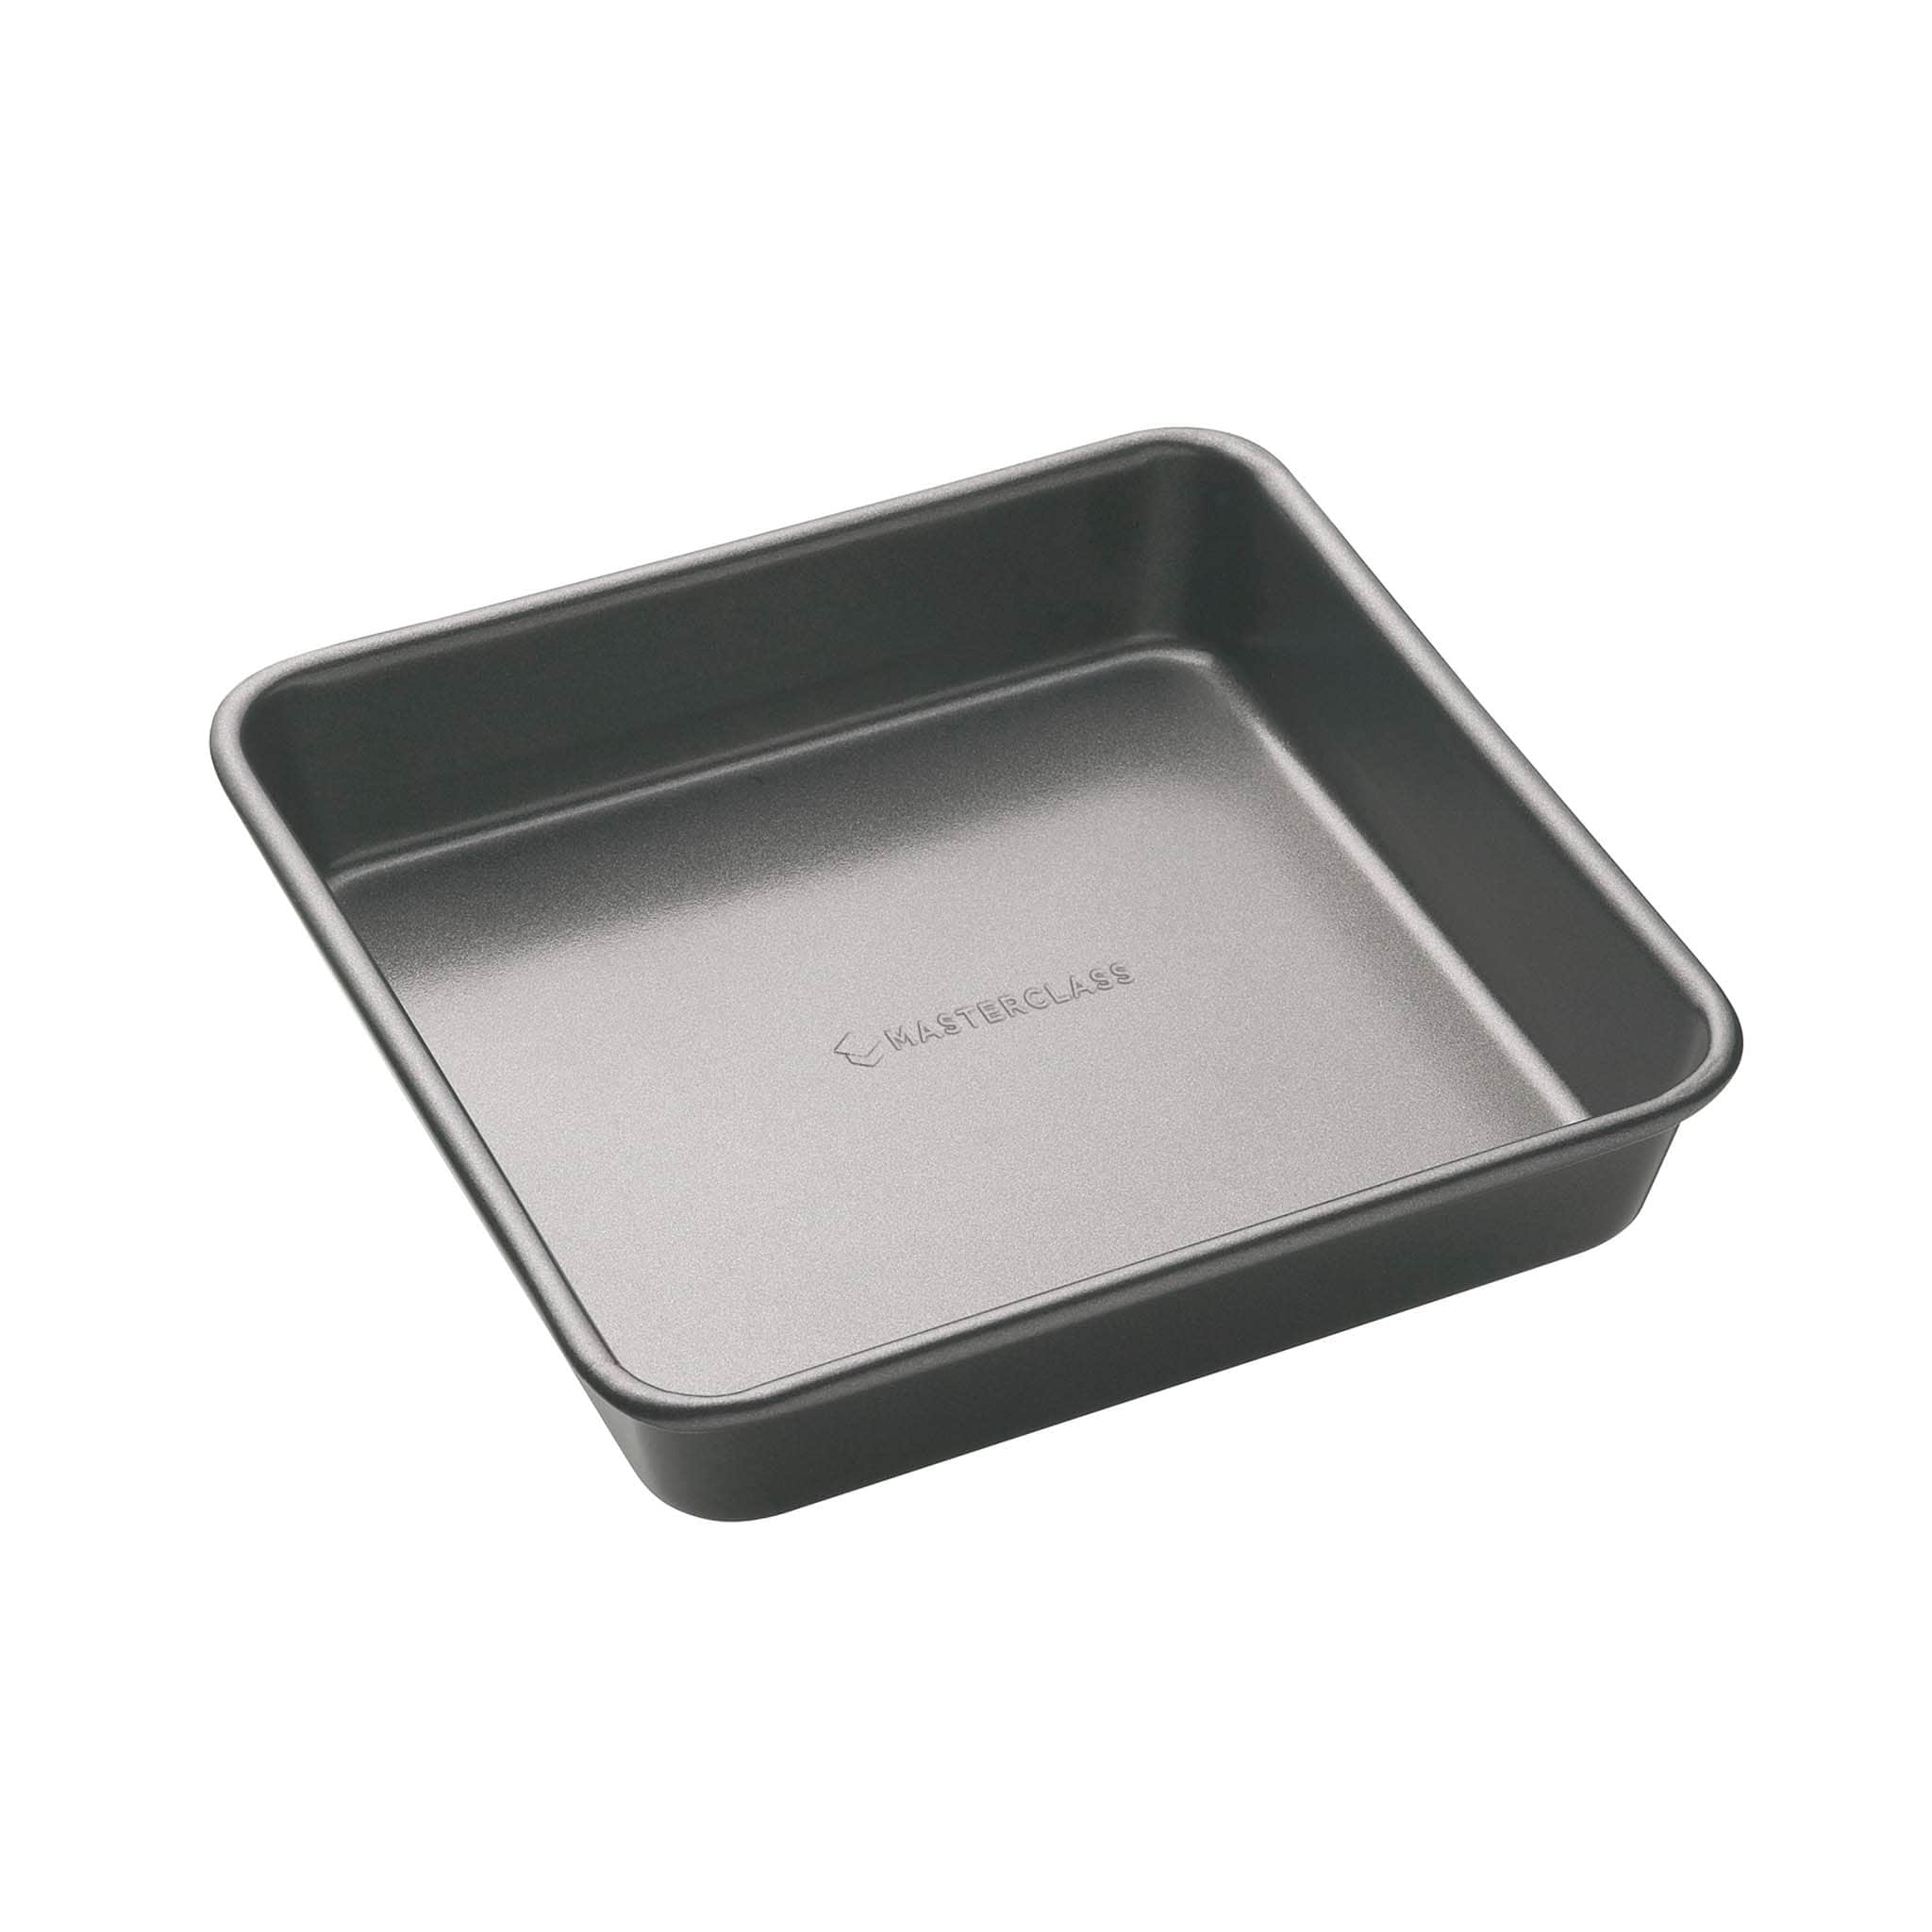 Non-Stick Baking Pan 23cm x 23cm